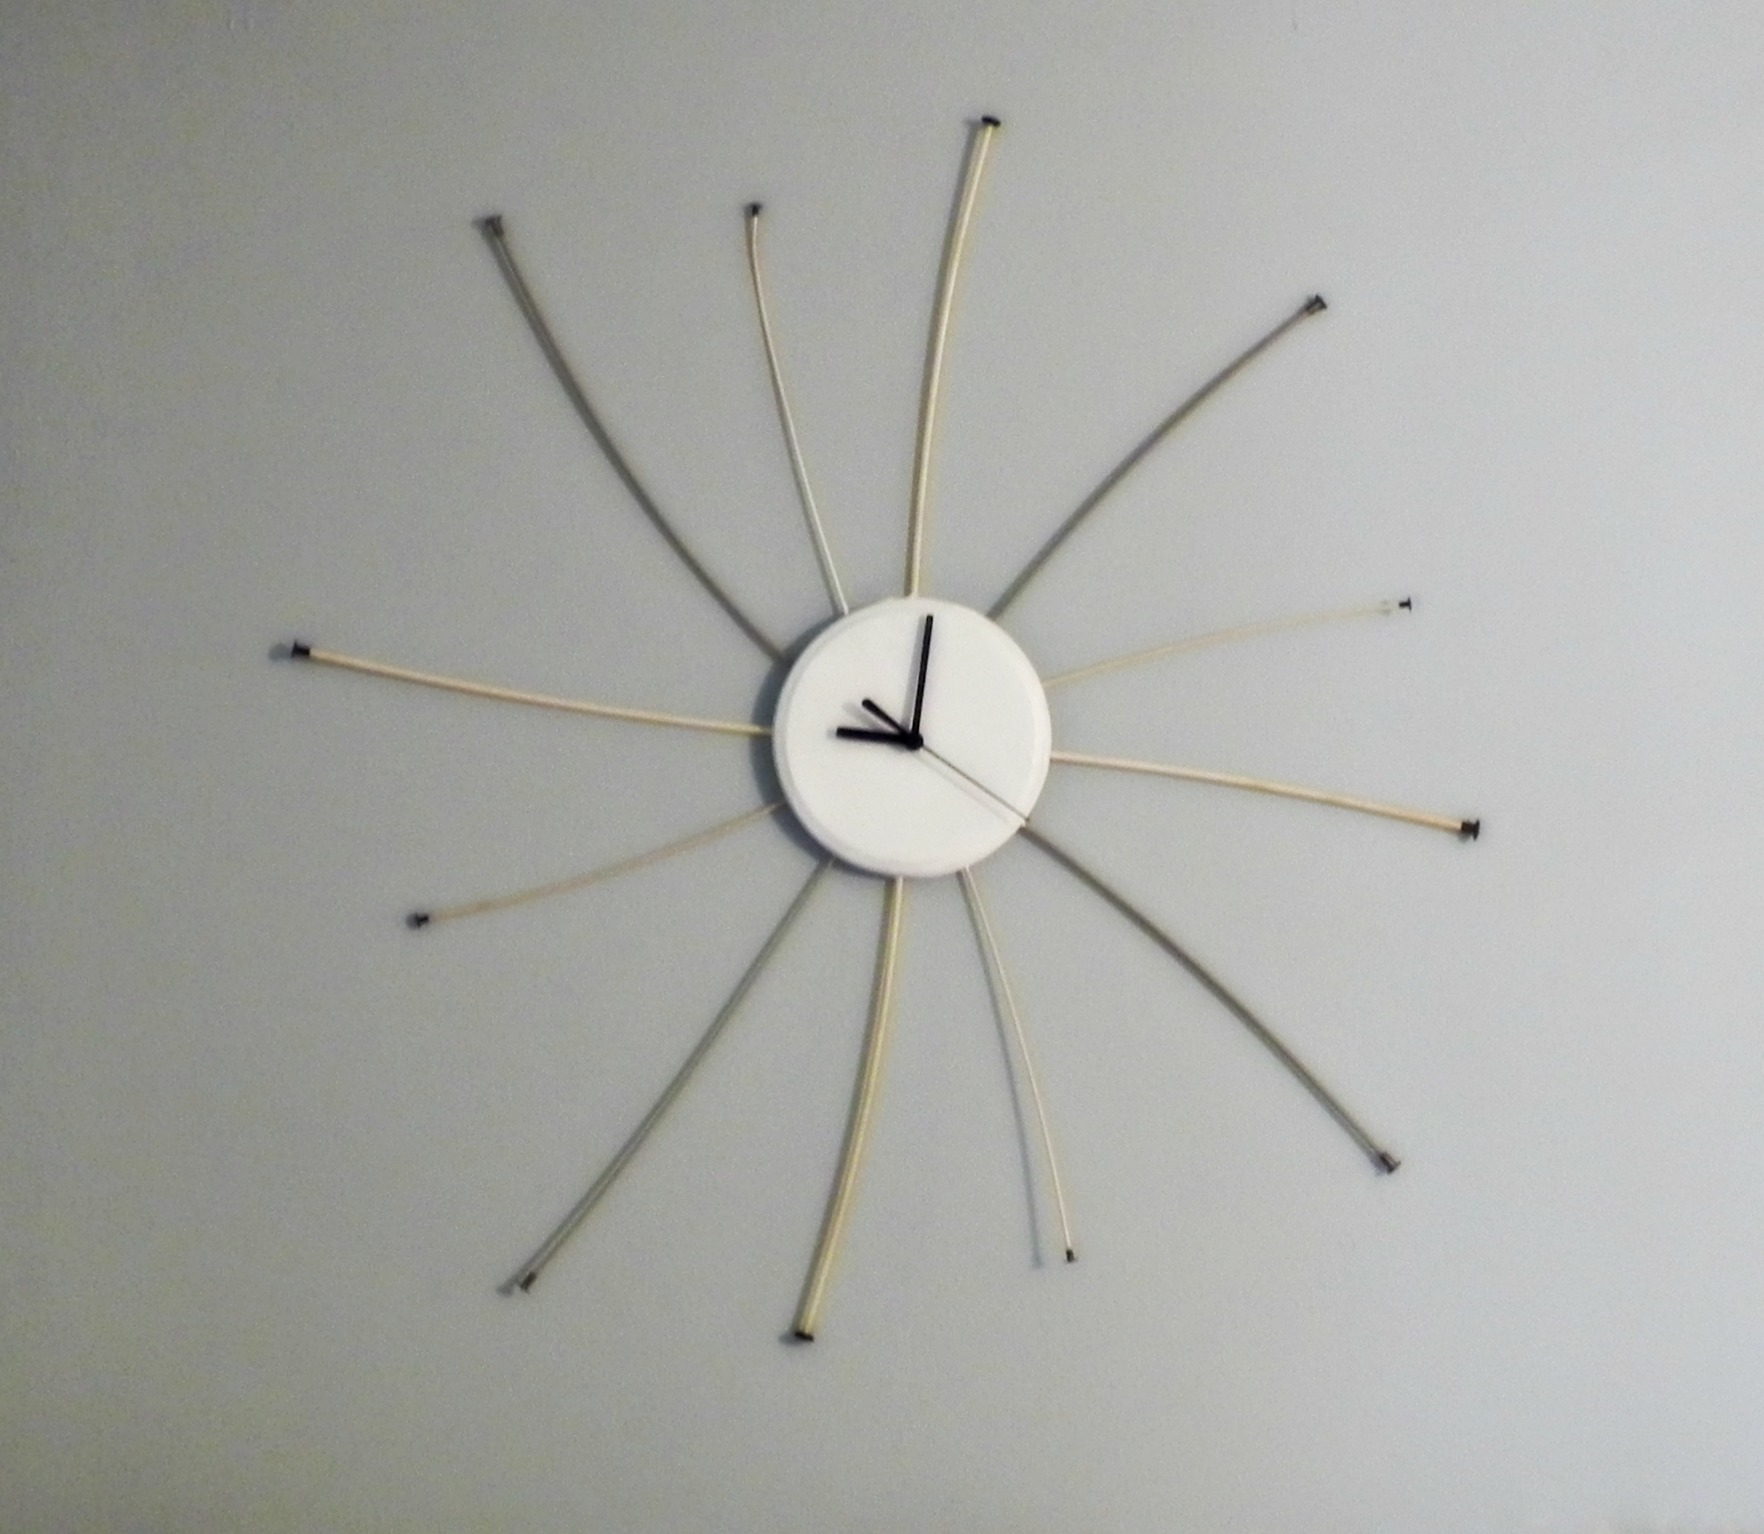 Inspiring Starburst Wall Decor With Clock For Wall Accessories Ideas